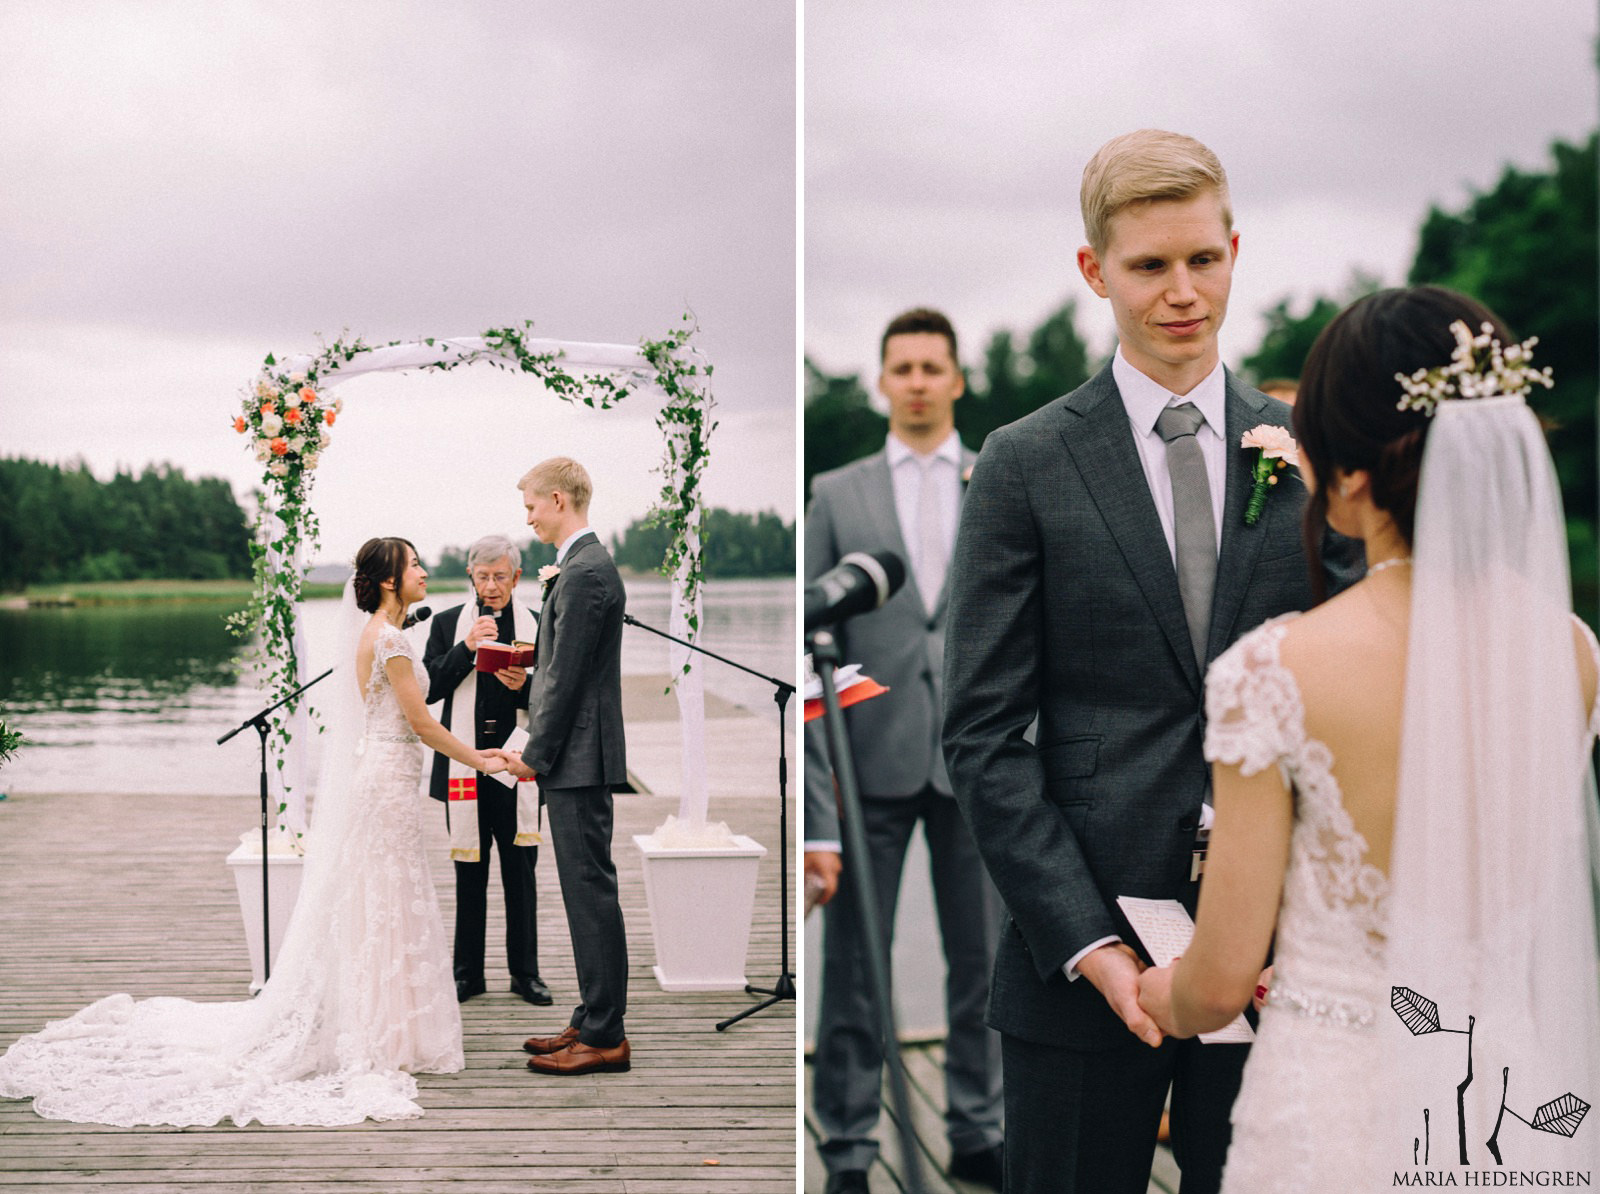 Finnish Vietnamese wedding